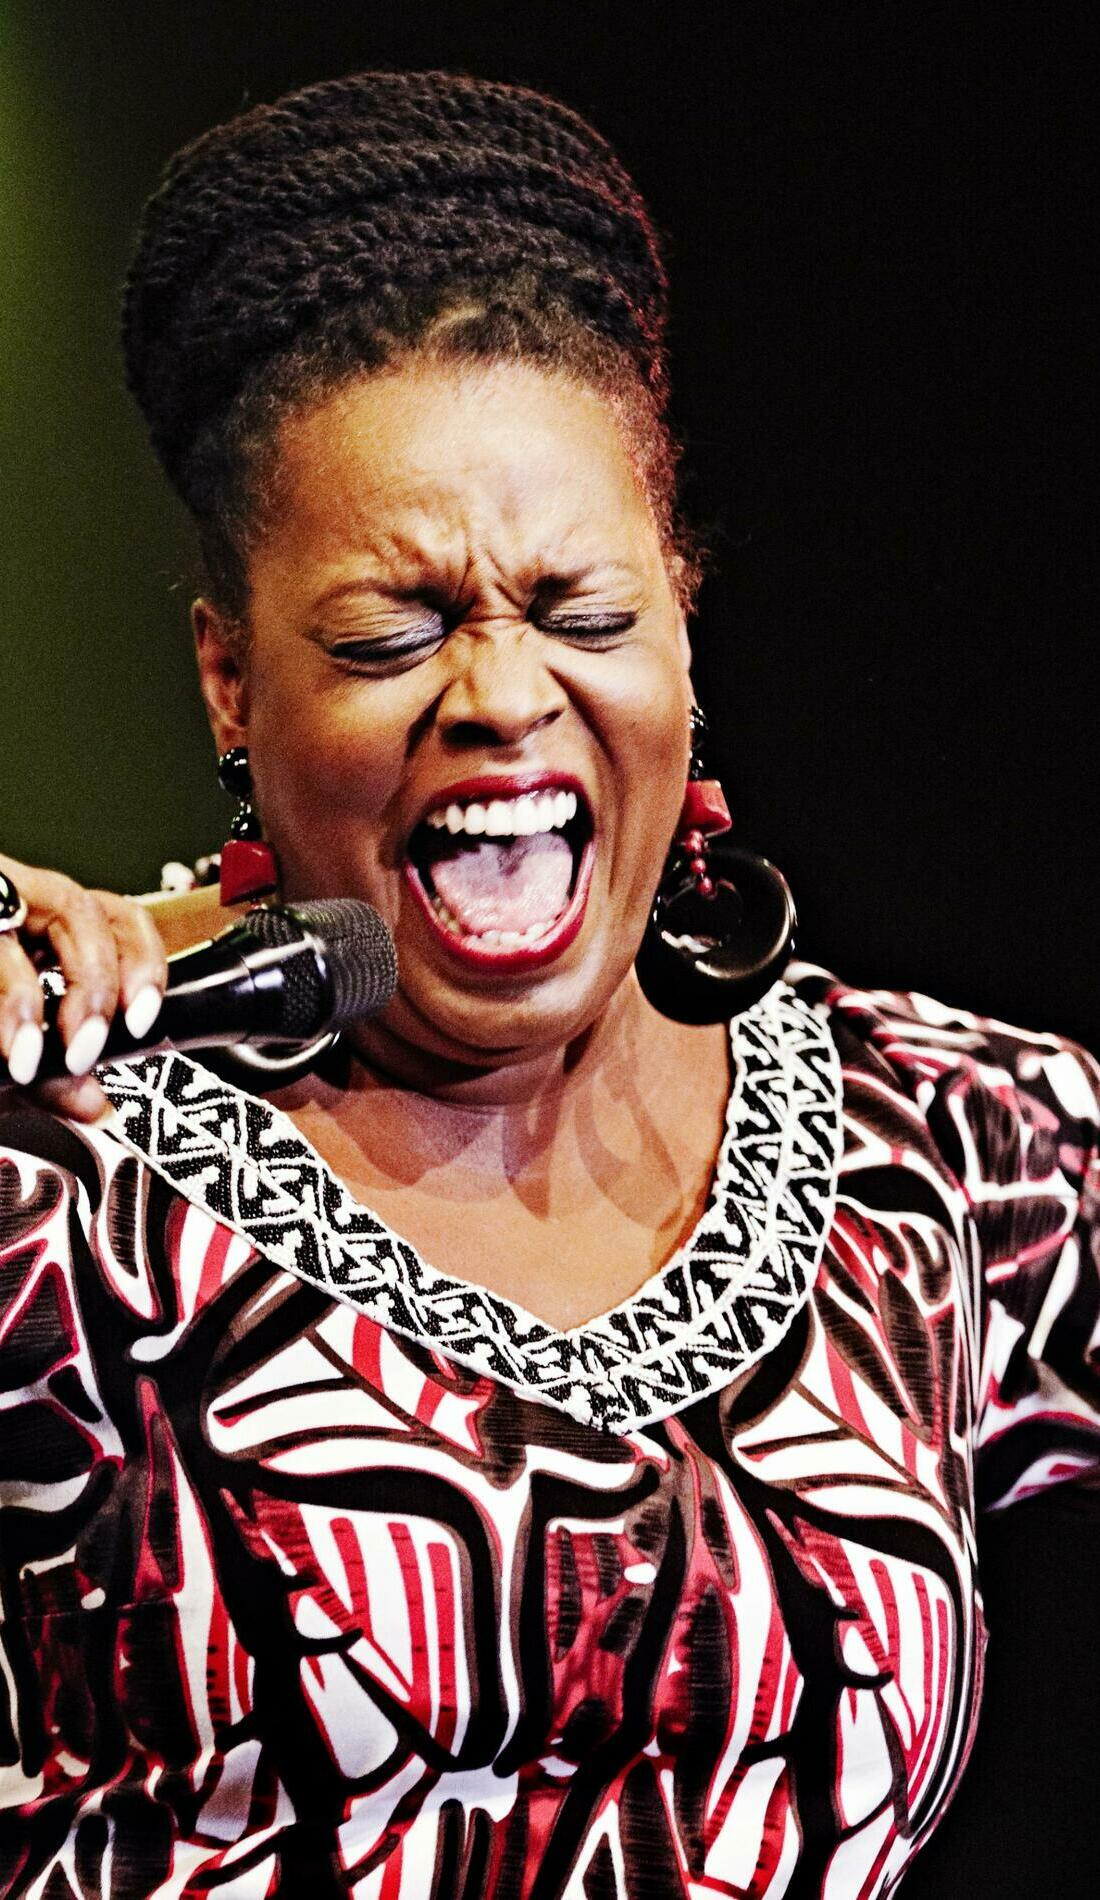 A Dianne Reeves live event